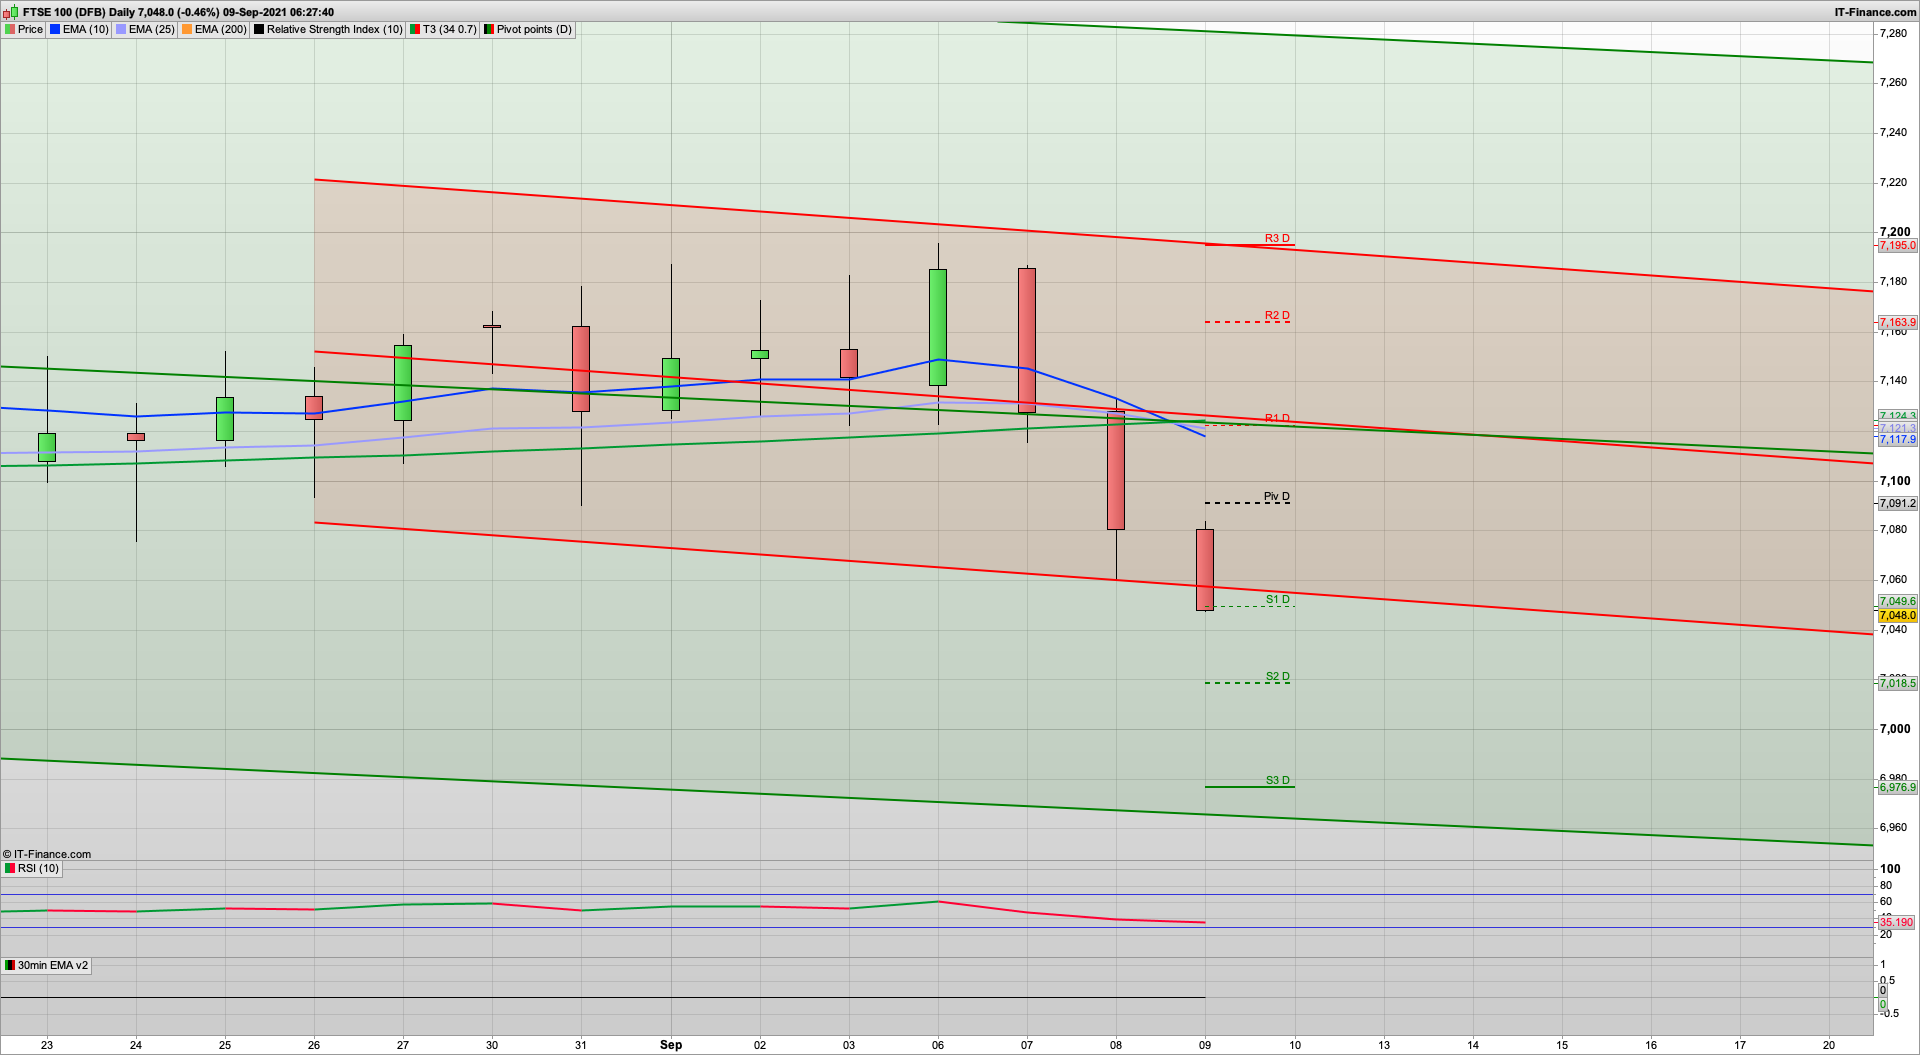 September weakness likely to continue with 7040 6990 6965 support   7091 7135 resistance